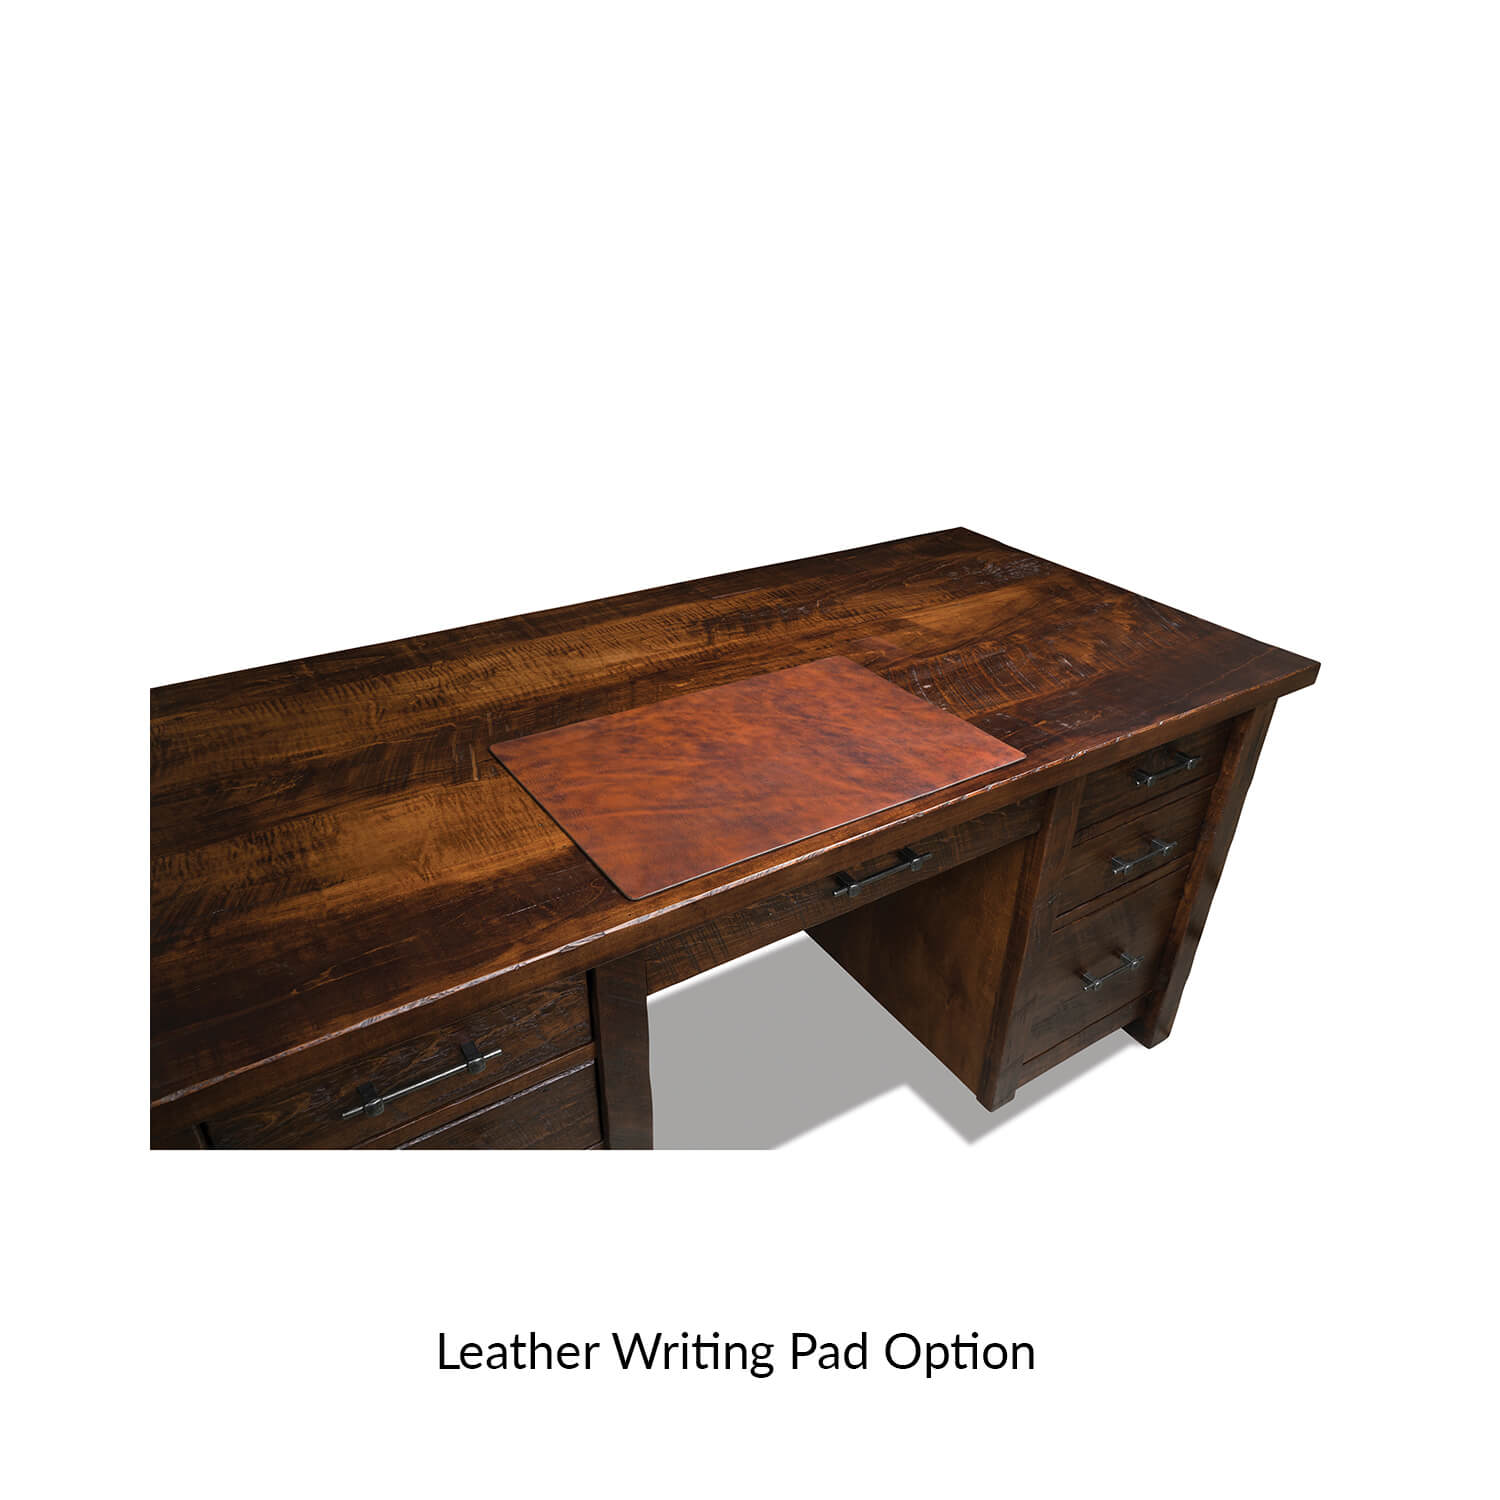 10.-leather-writing-pad-option.jpg